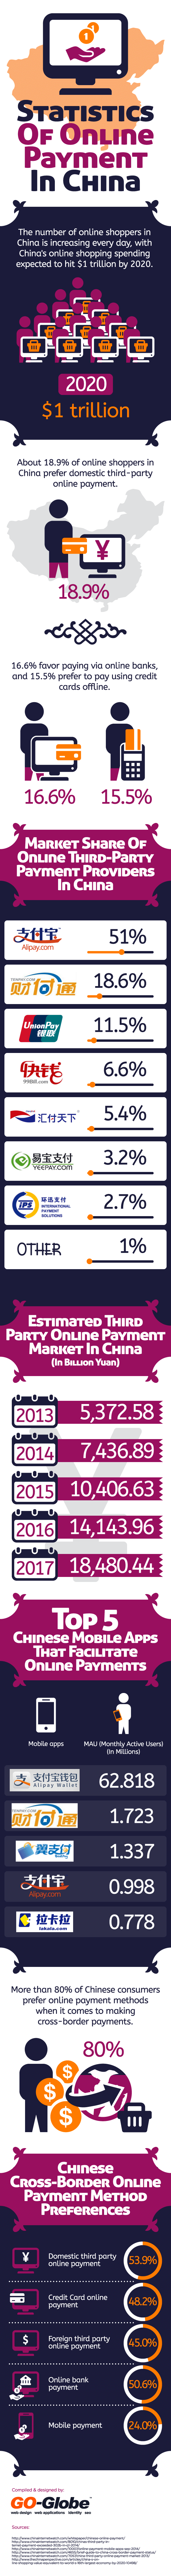 Online payment in China